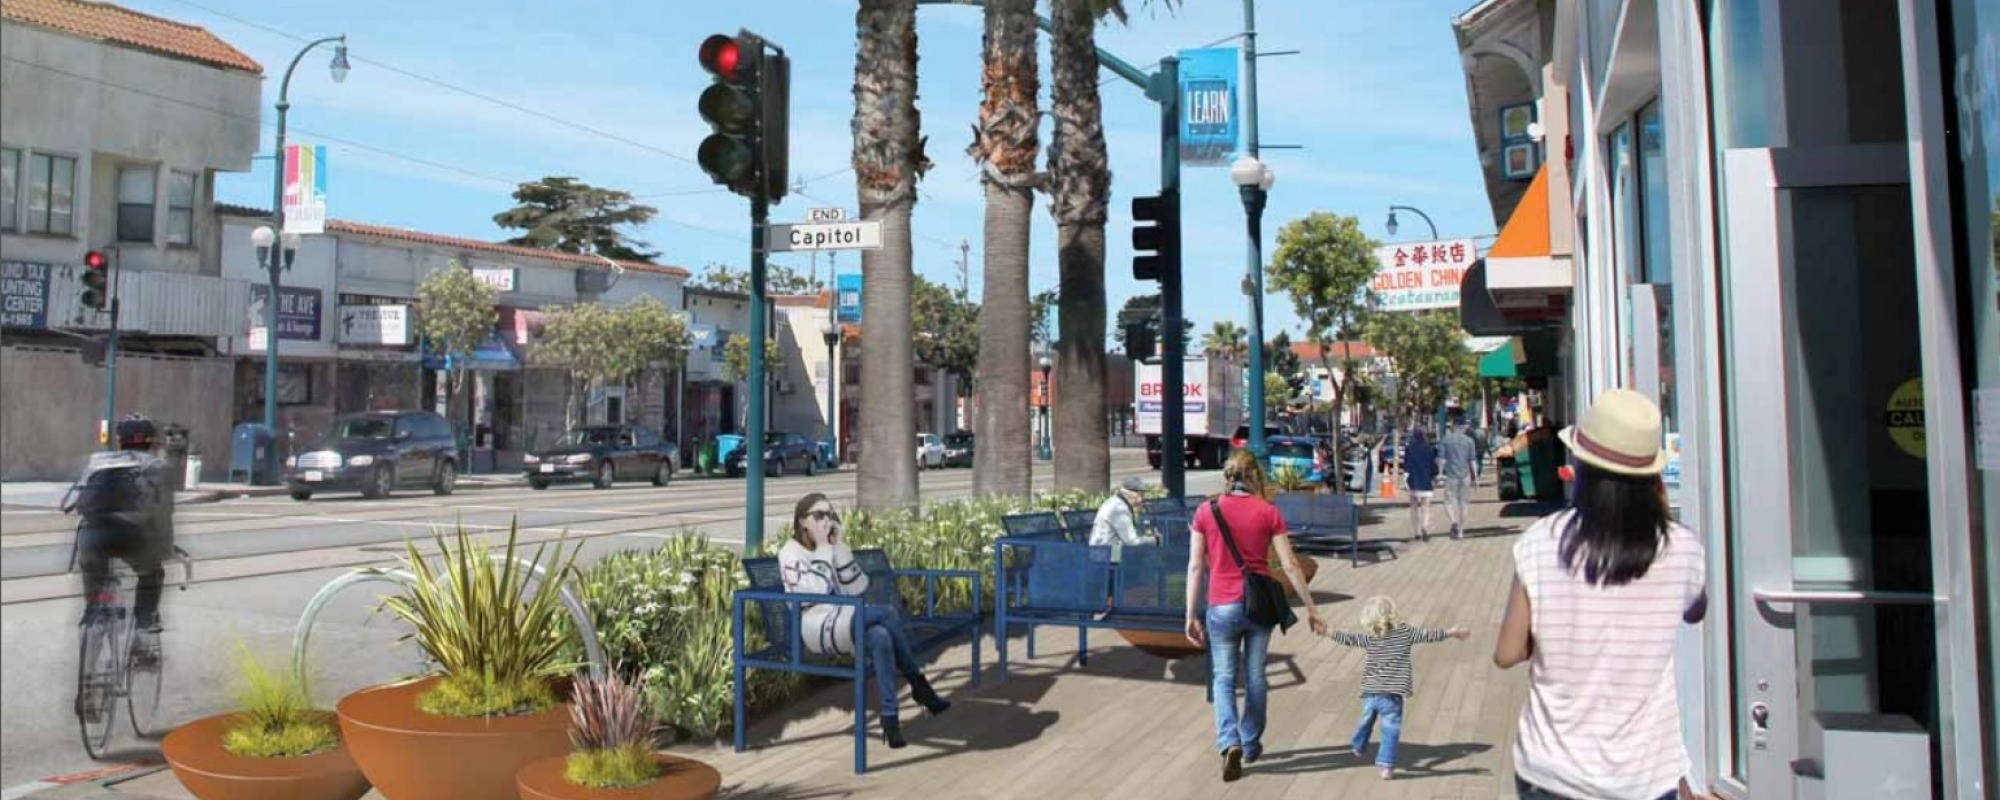 Ocean Avenue Corridor Design Project rendering